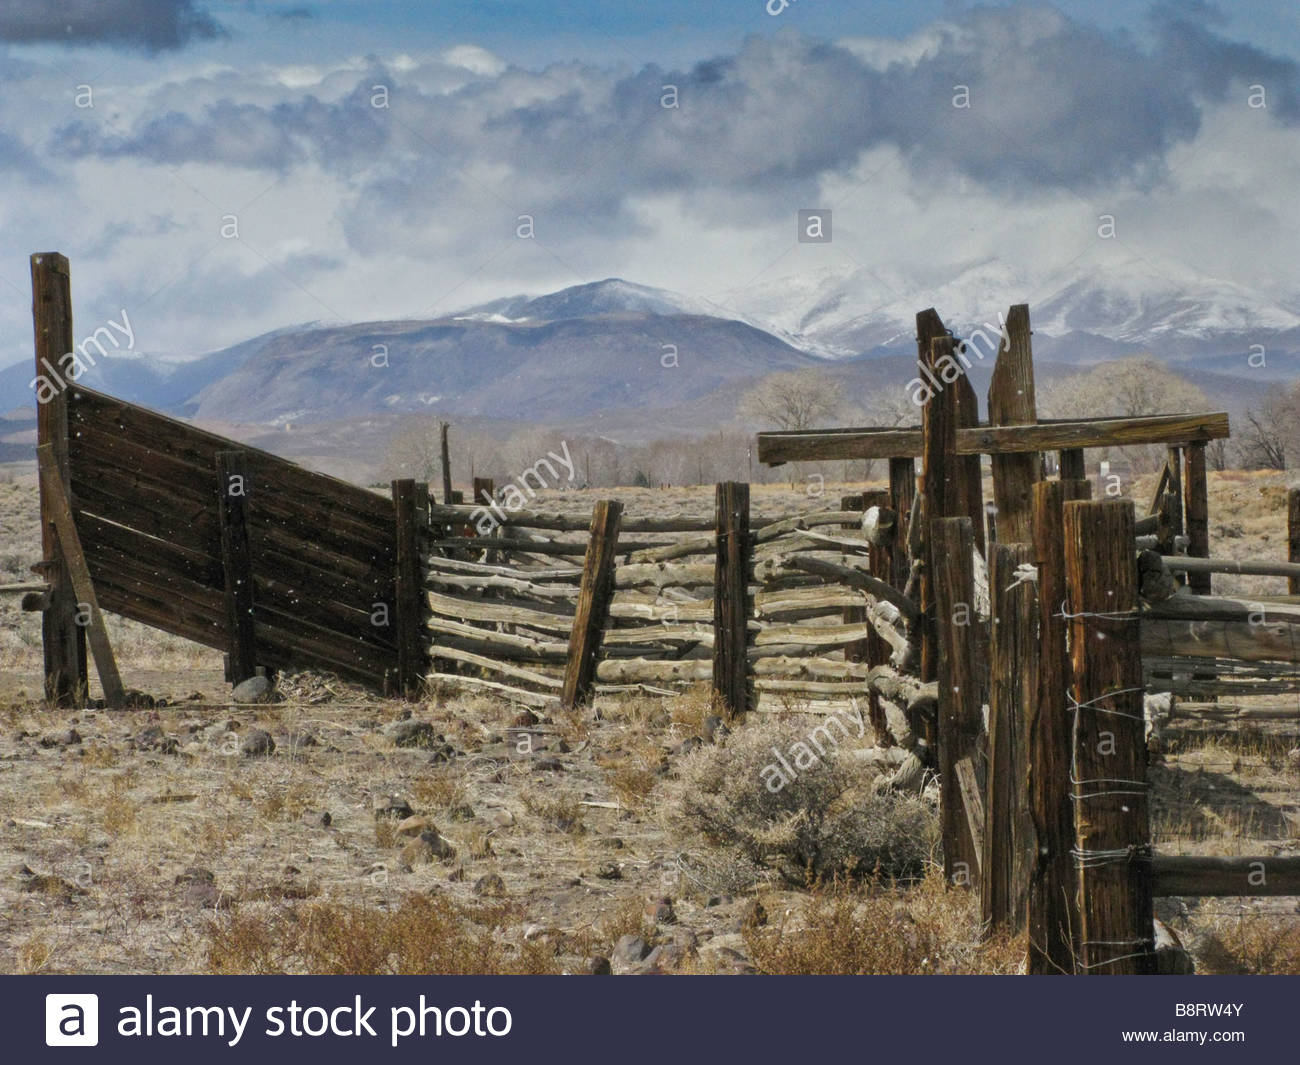 Cattle chute and corral with snow capped mountains in the 1300x1065